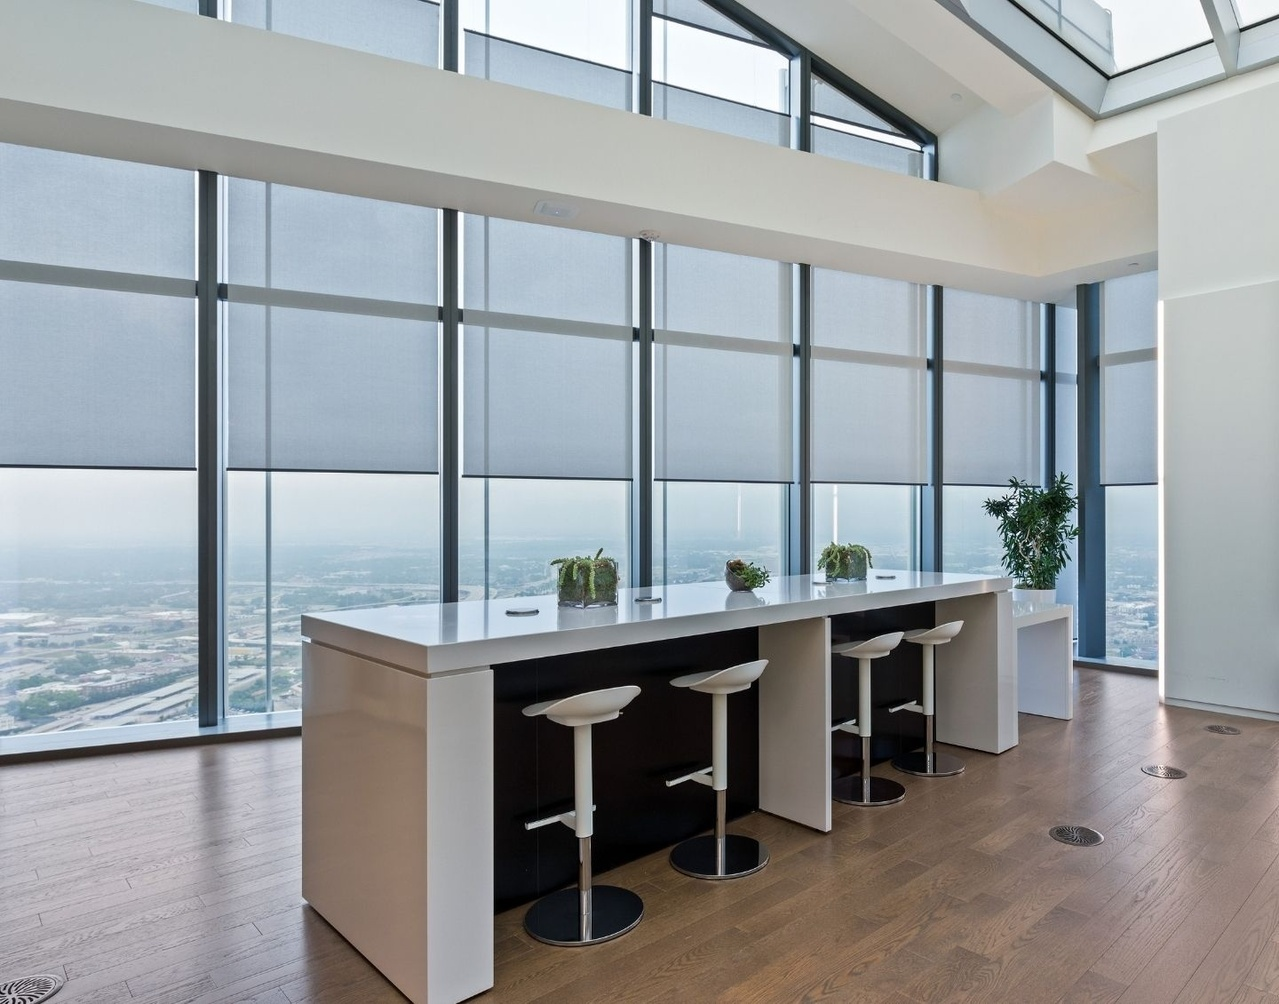 Commercial space with shades over large windows